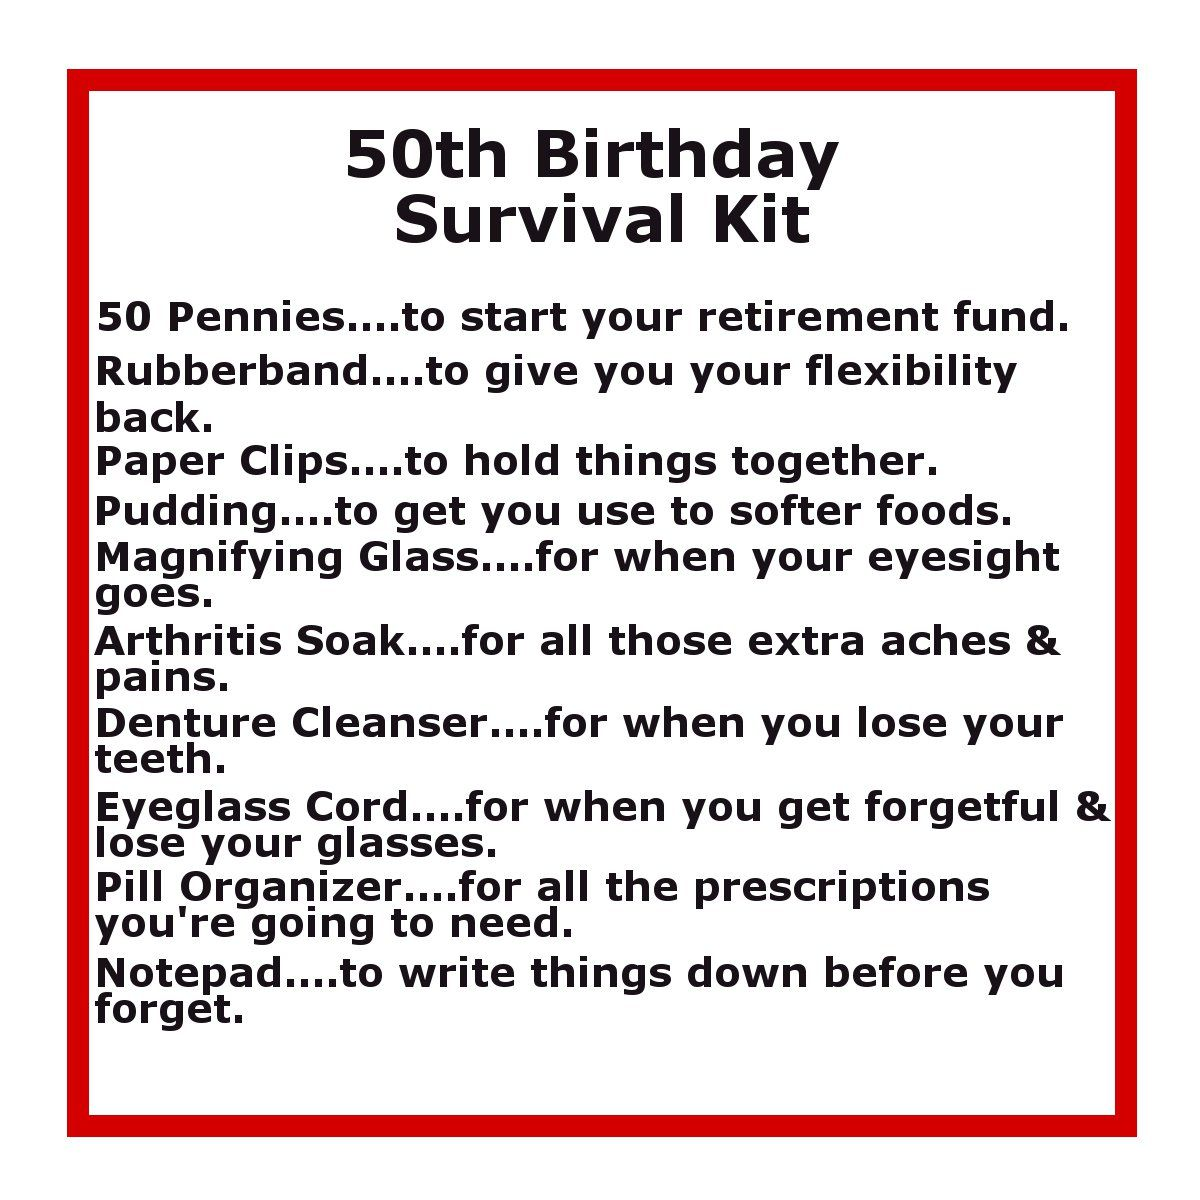 Quotes About Turning 50 50Th Birthday Survival Kit  Birthday Survival Kit Survival Kits